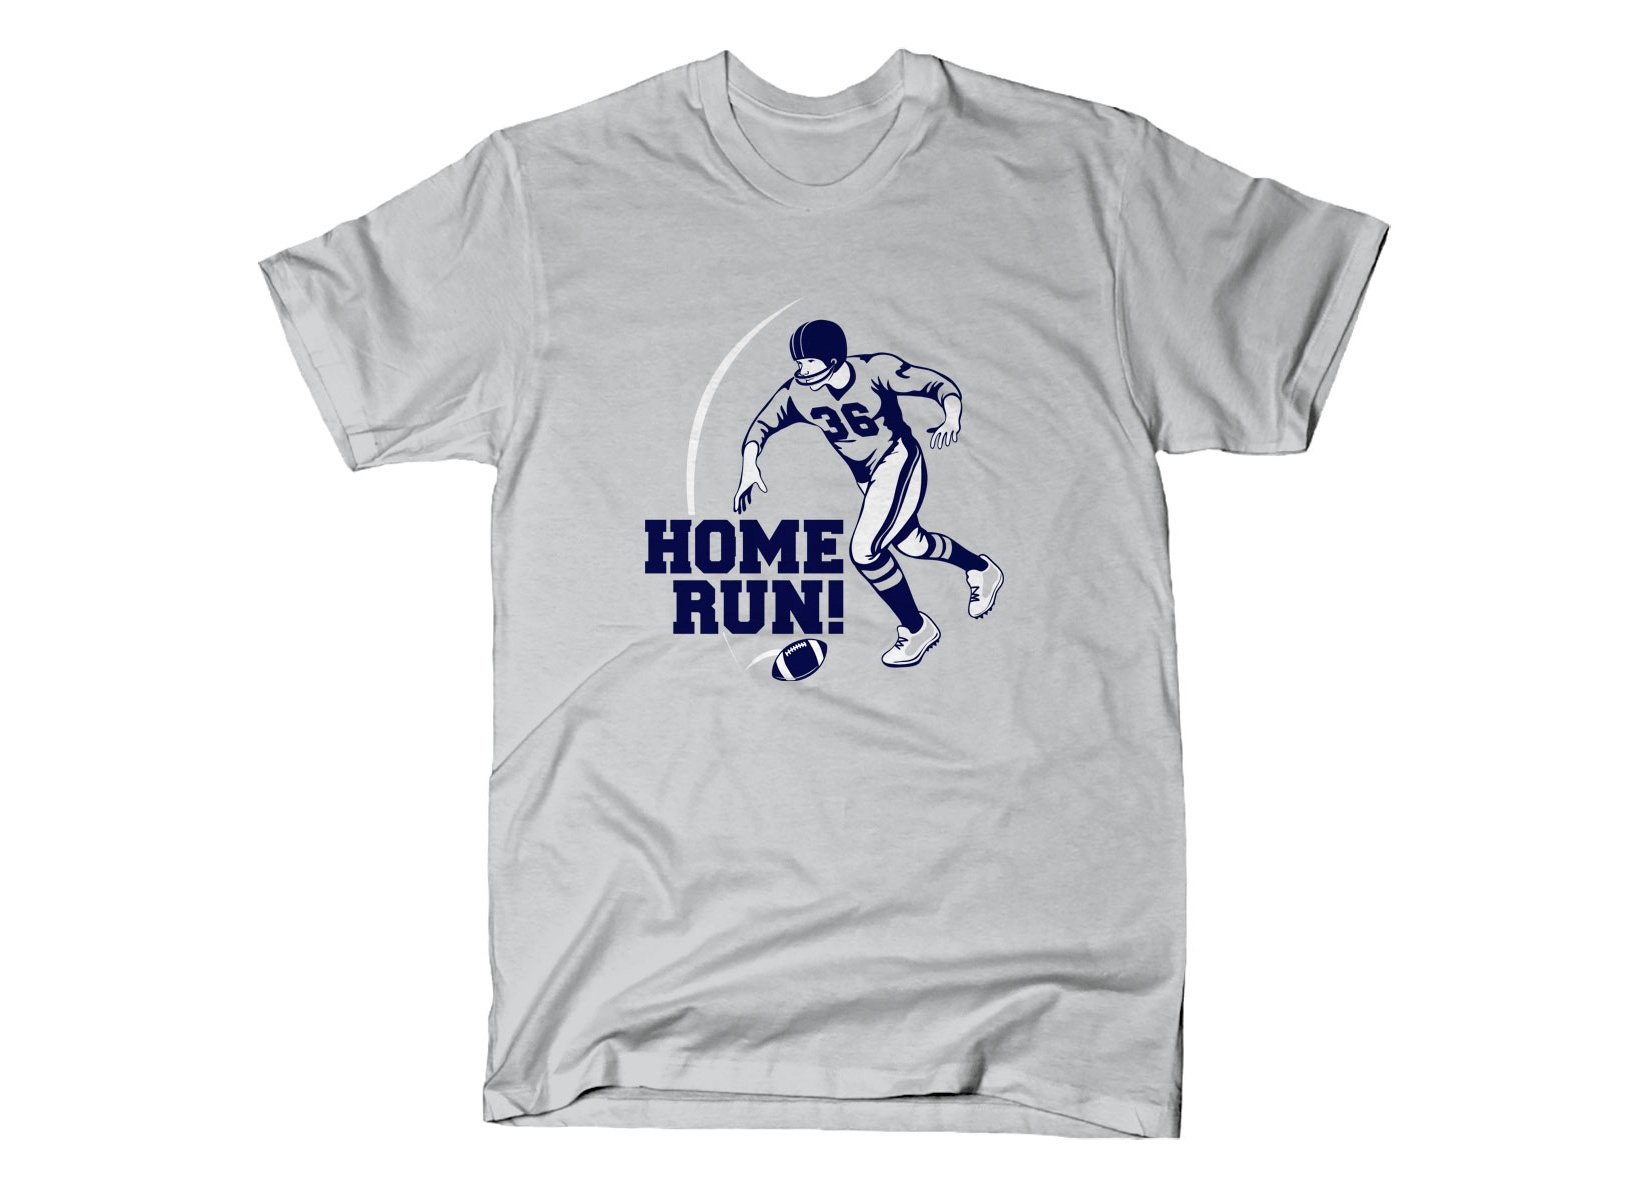 Home Run! on Mens T-Shirt